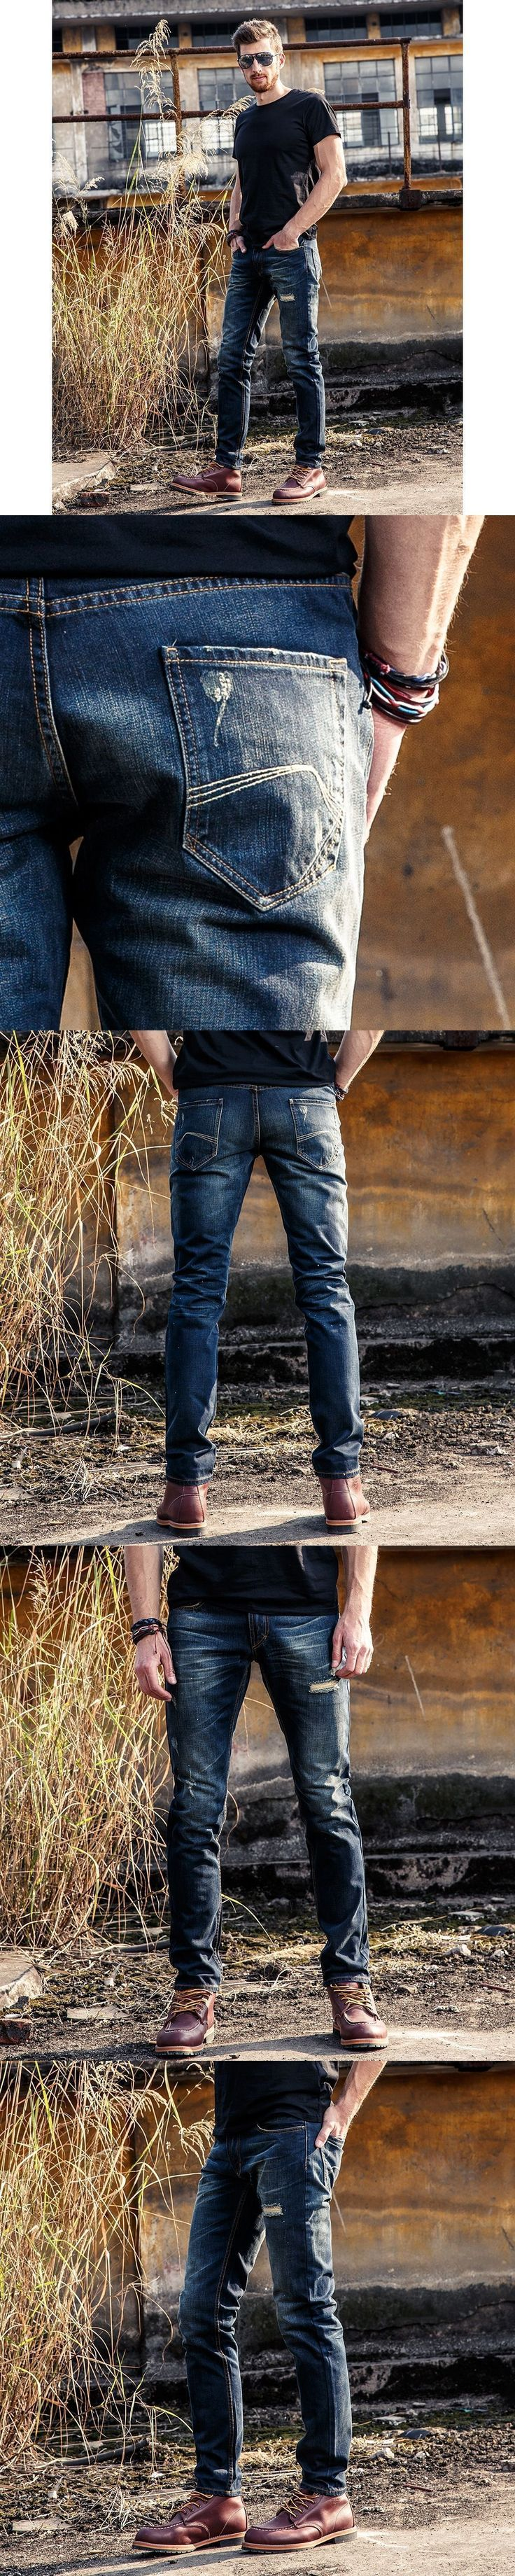 FuHao 2017 Ripped Jeans for Men Denim Overalls Mens Motorcycle Skinny Biker Jeans Slim Male Trousers,60035A